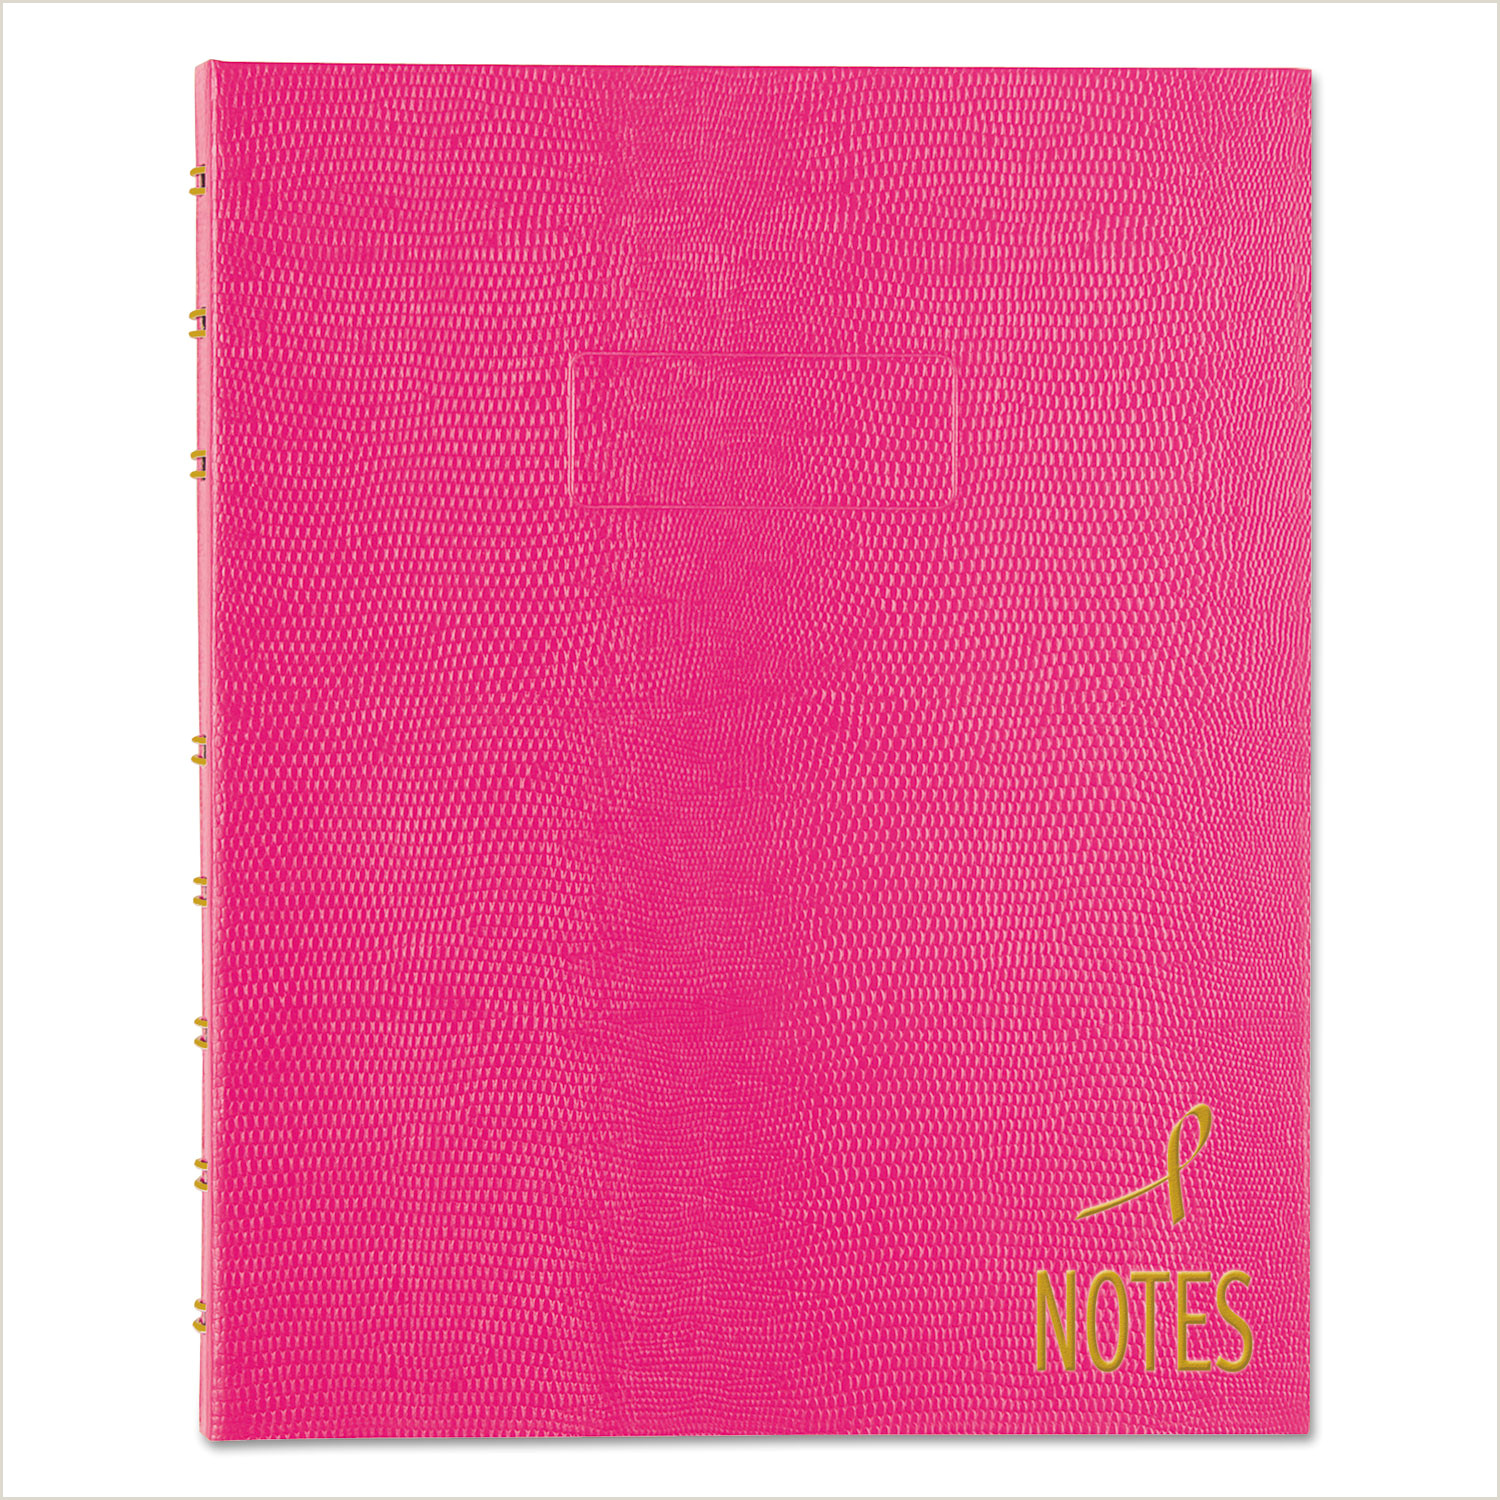 Colored Perforated Business Card Stock Notepro Notebook 1 Subject Narrow Rule Bright Pink Cover 9 25 X 7 25 75 Sheets